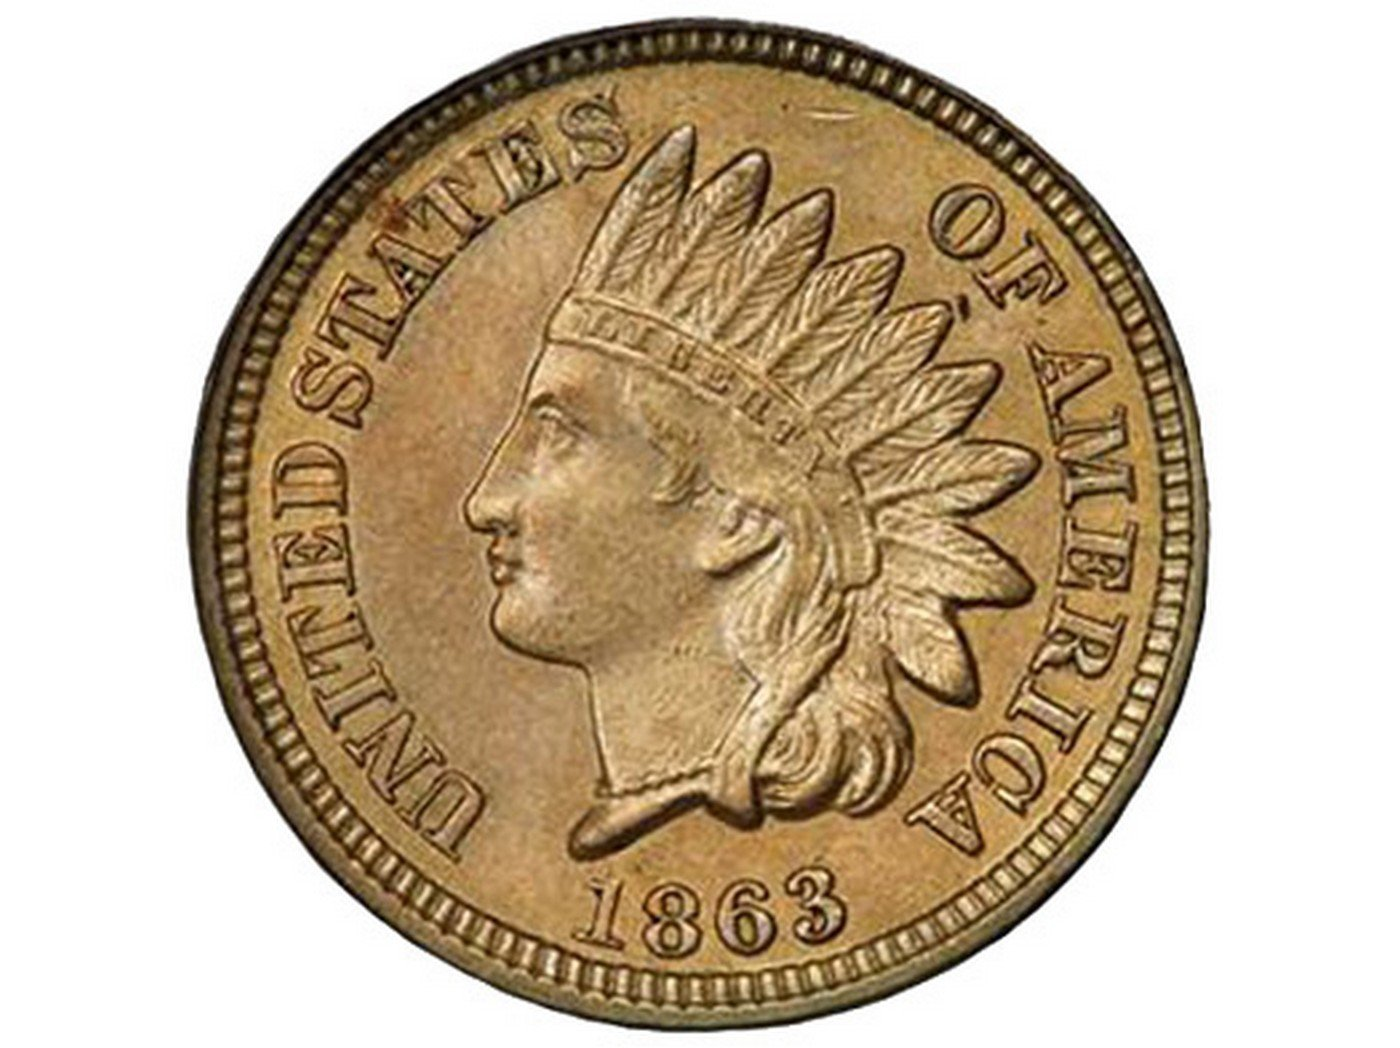 1863 Obverse of CUD-023 - Indian Head Penny - Photo by Todd Pollock of BluCCPhotos.com